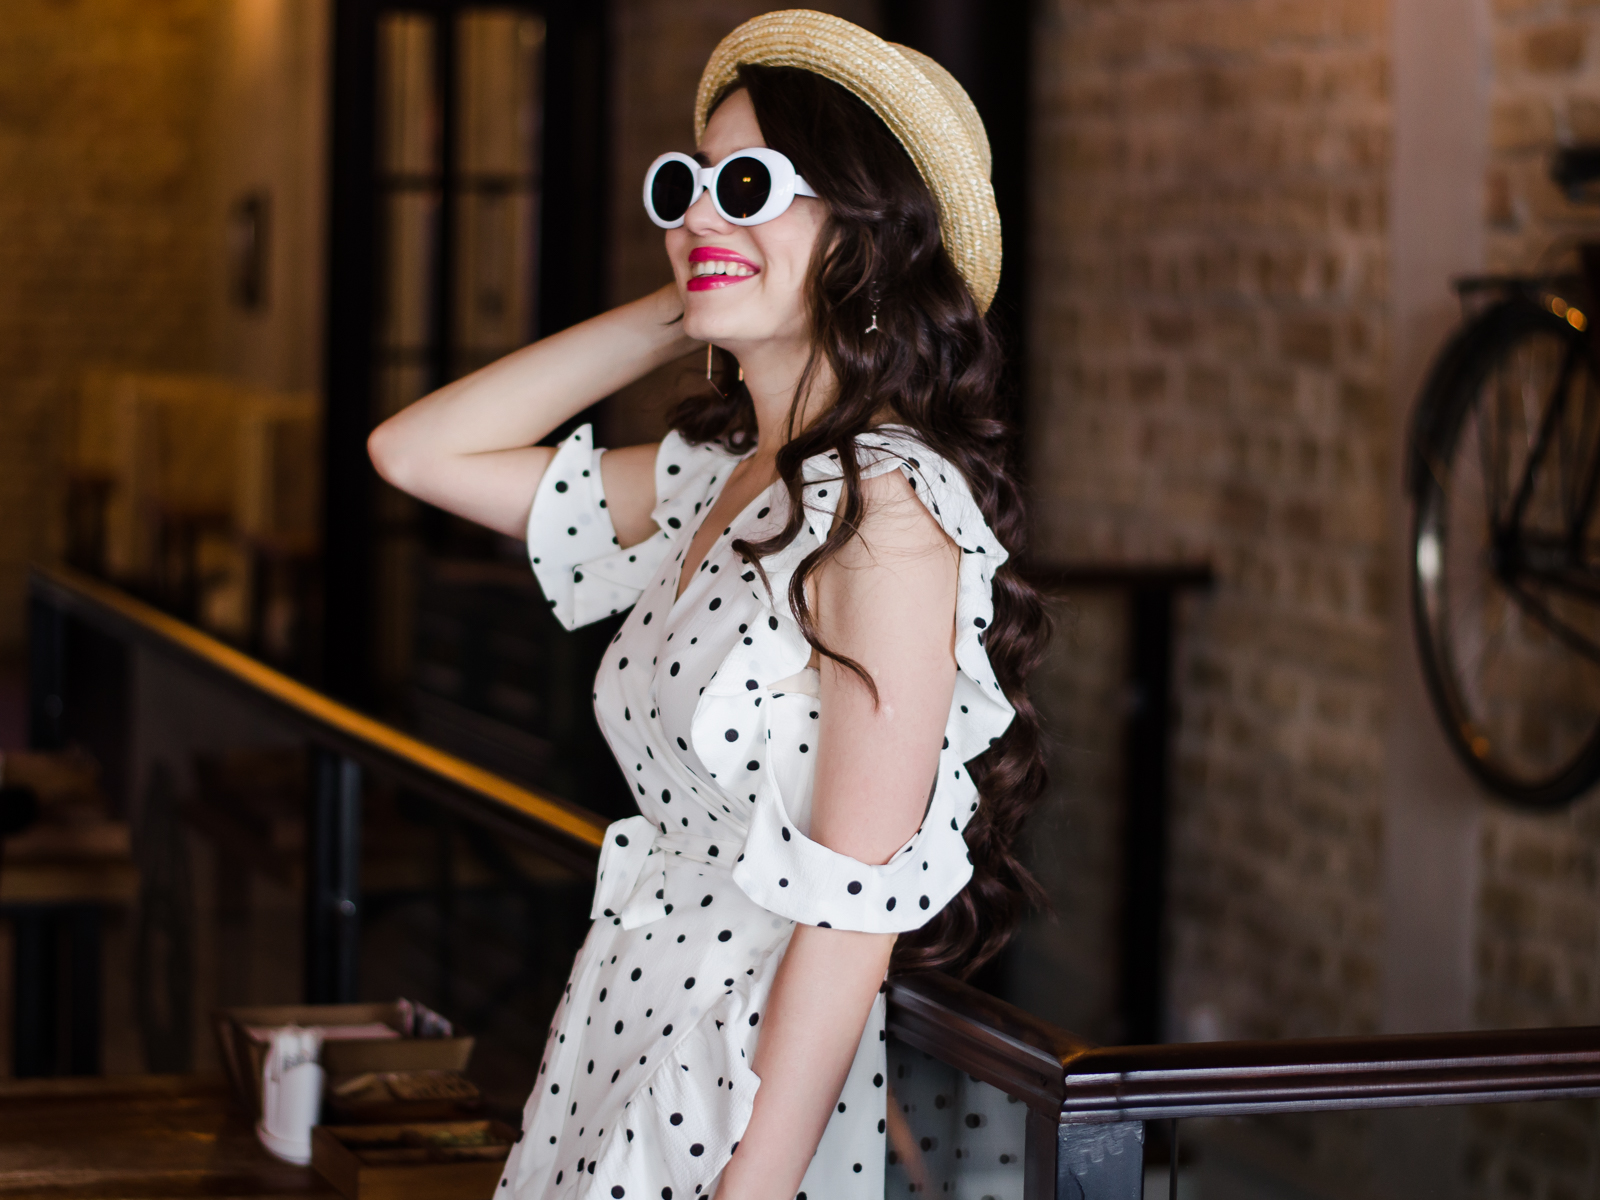 fashion blogger diyorasnotes diyora beta wrap dress mini polka dot how to wear mini dress straw bag espadrilles